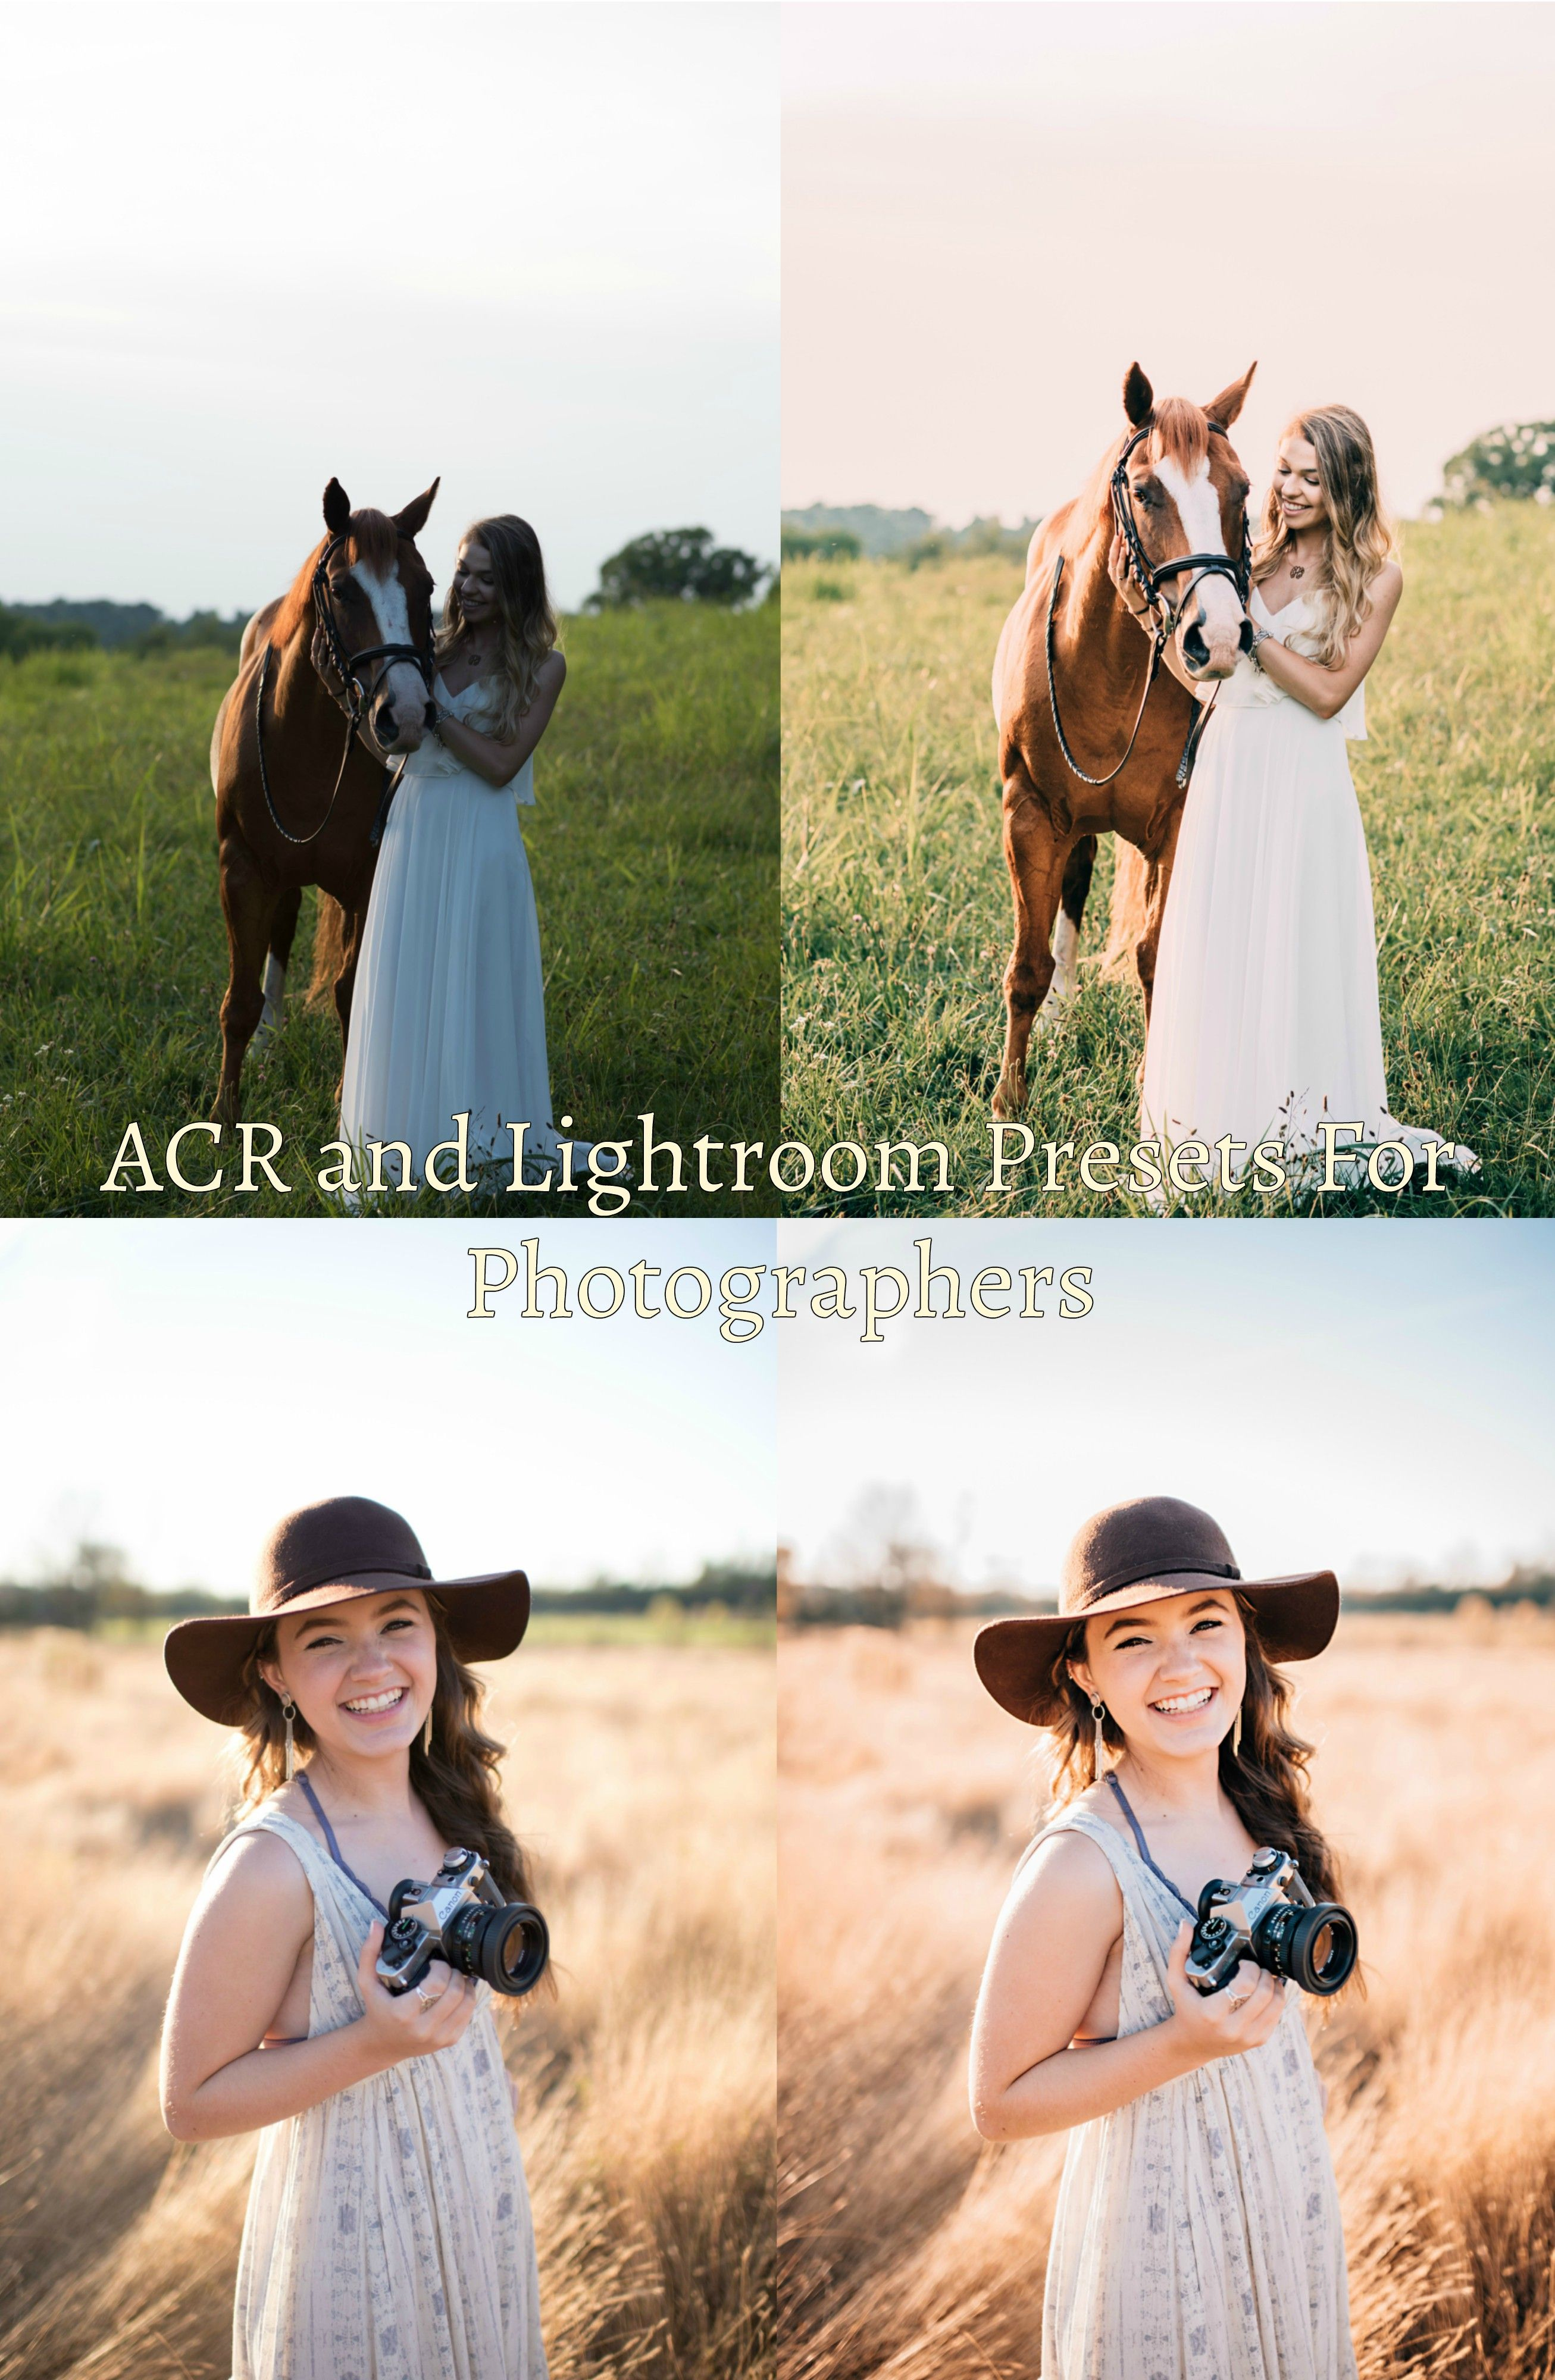 Adobe Camera Raw And Lightroom Presets For Photographers Editing Tools For Photogra Portrait Photography Editing Photo Editing Lightroom Photo Editing Styles